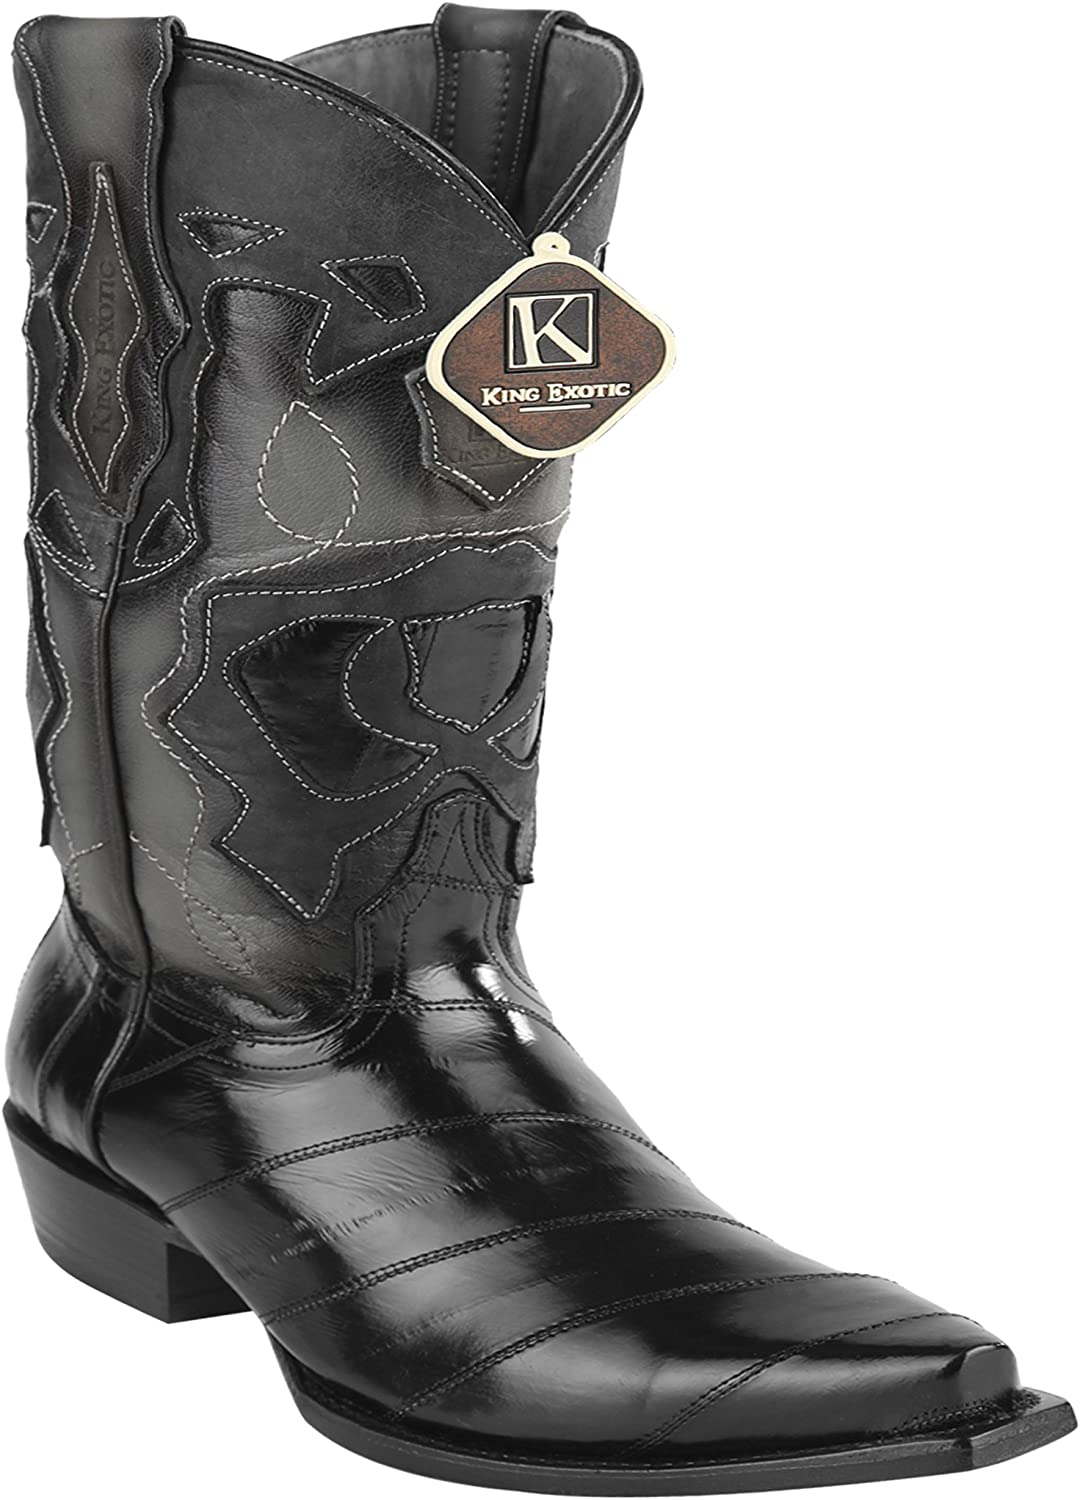 Women's Snip Toe Black Genuine Leather EEL Skin Western Boots